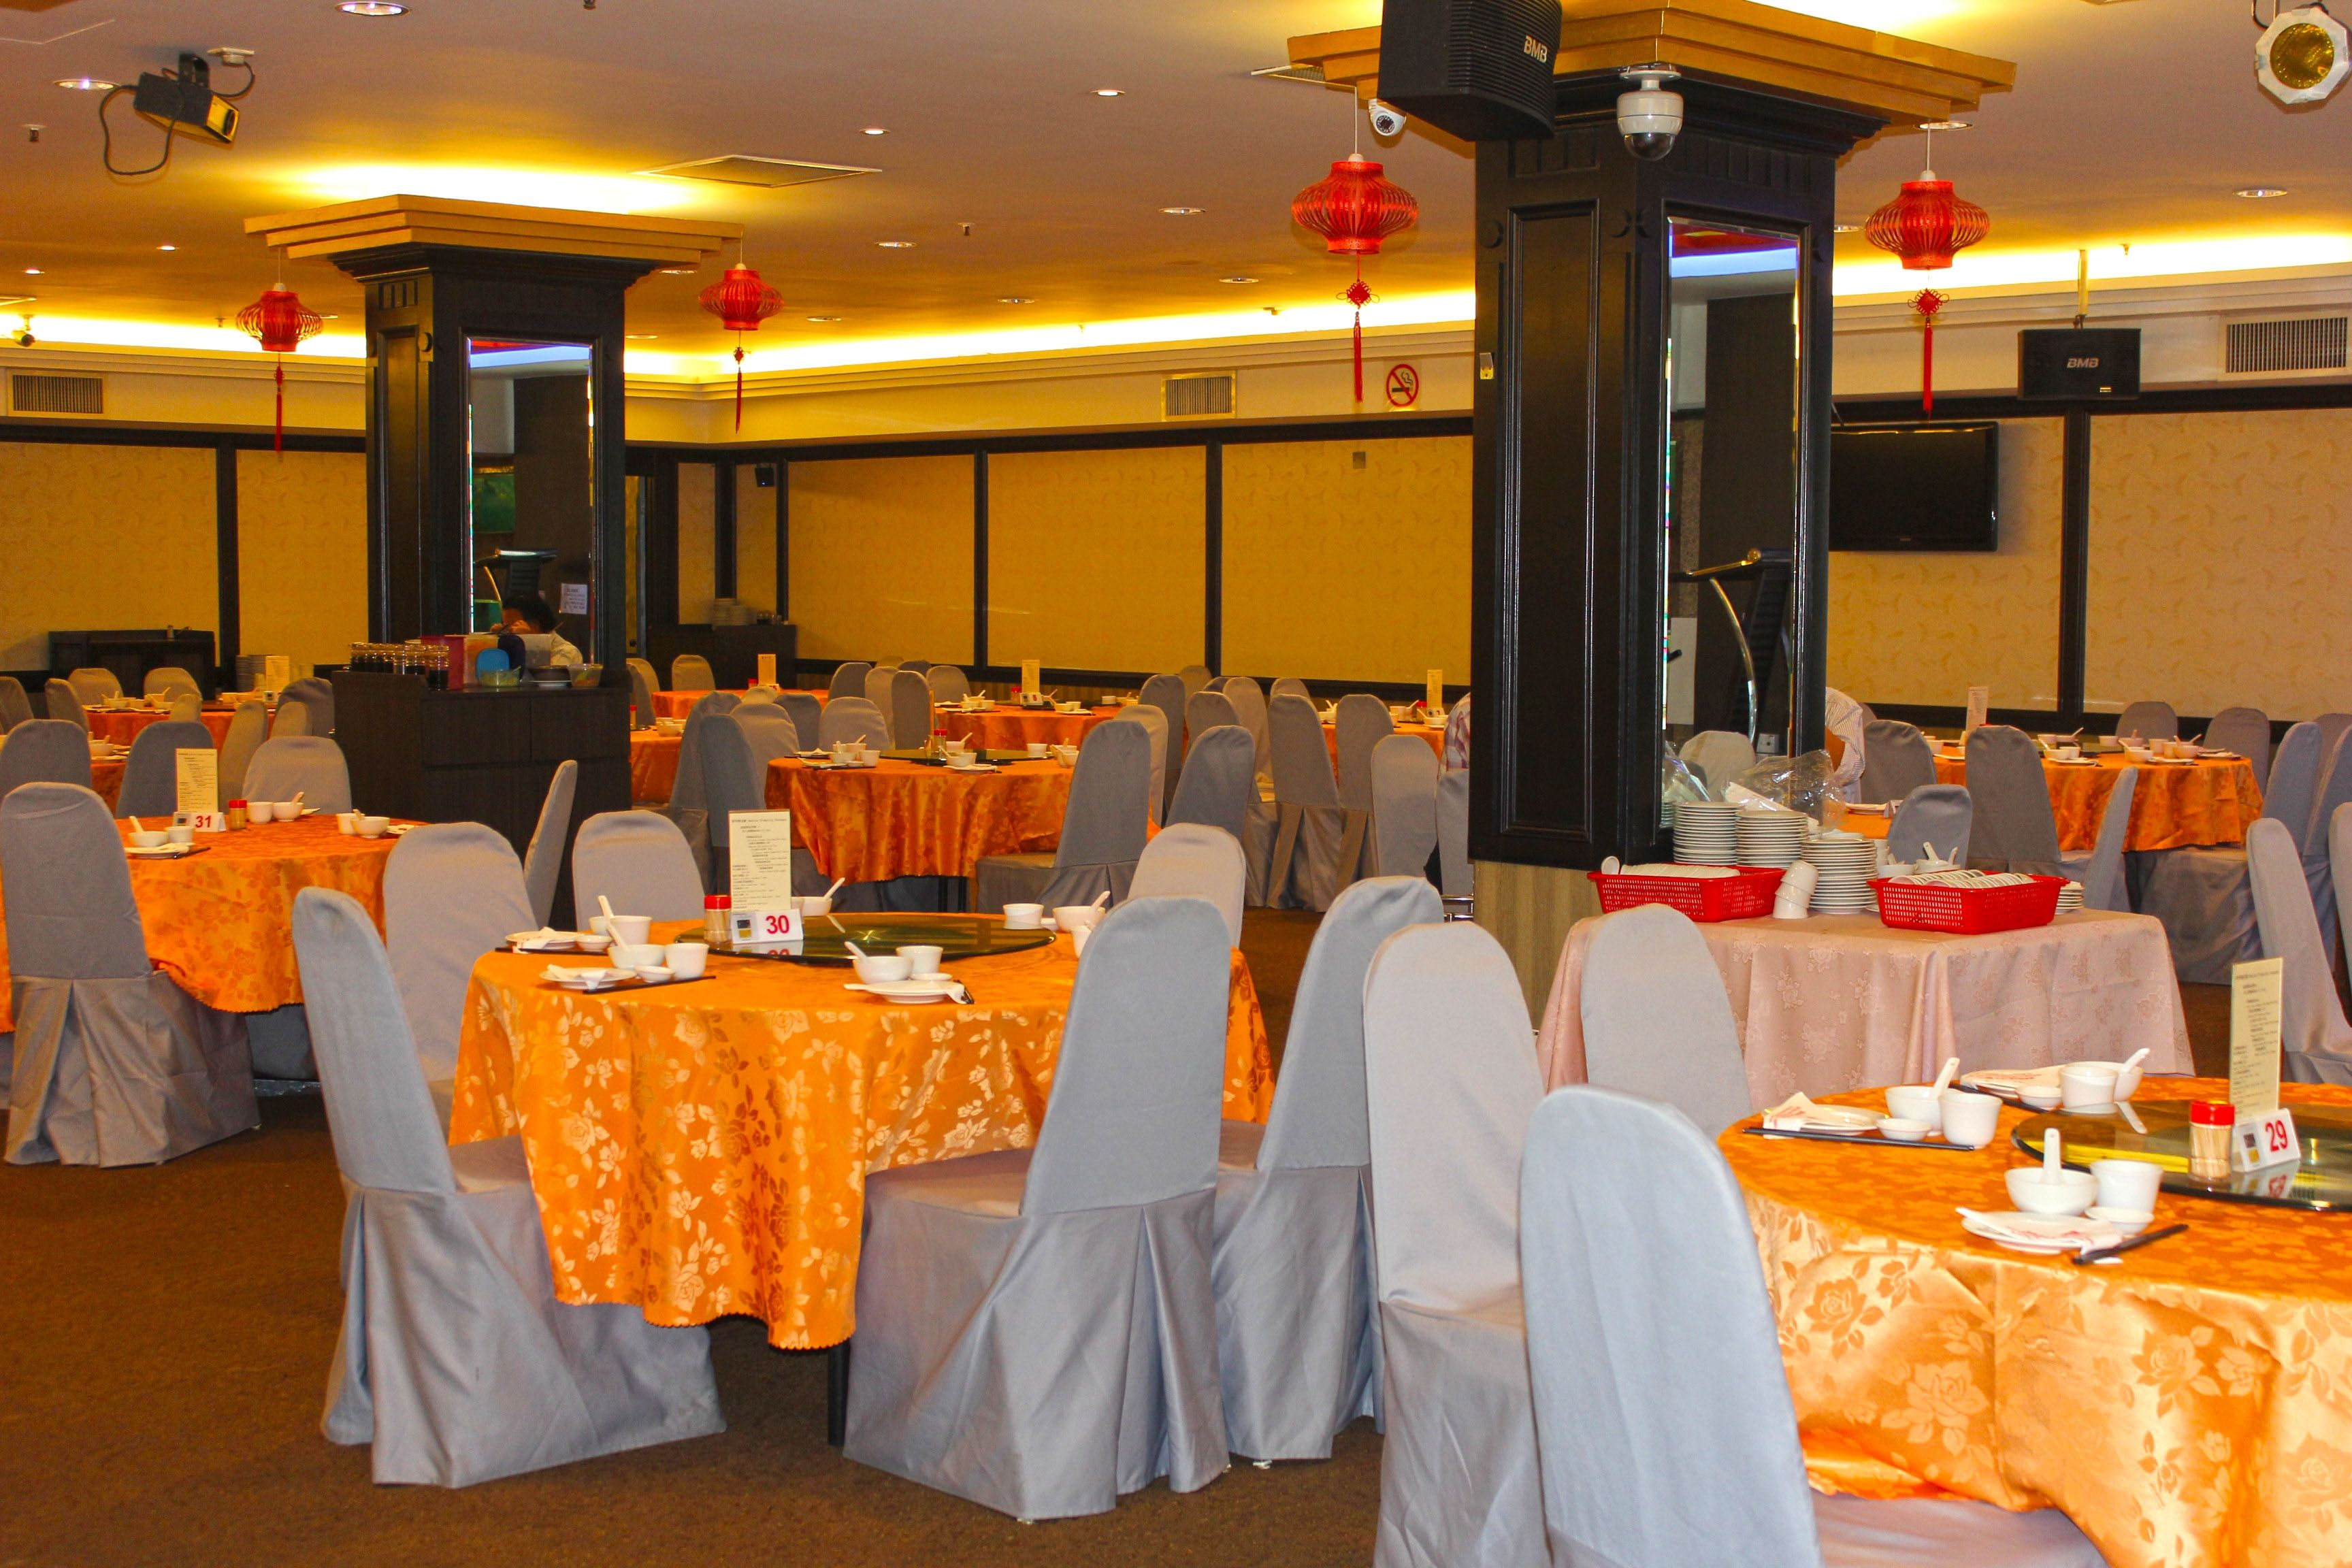 Zambian wedding decorations  Resraurant Pik Wah is good for wedding venue Excellent worth and